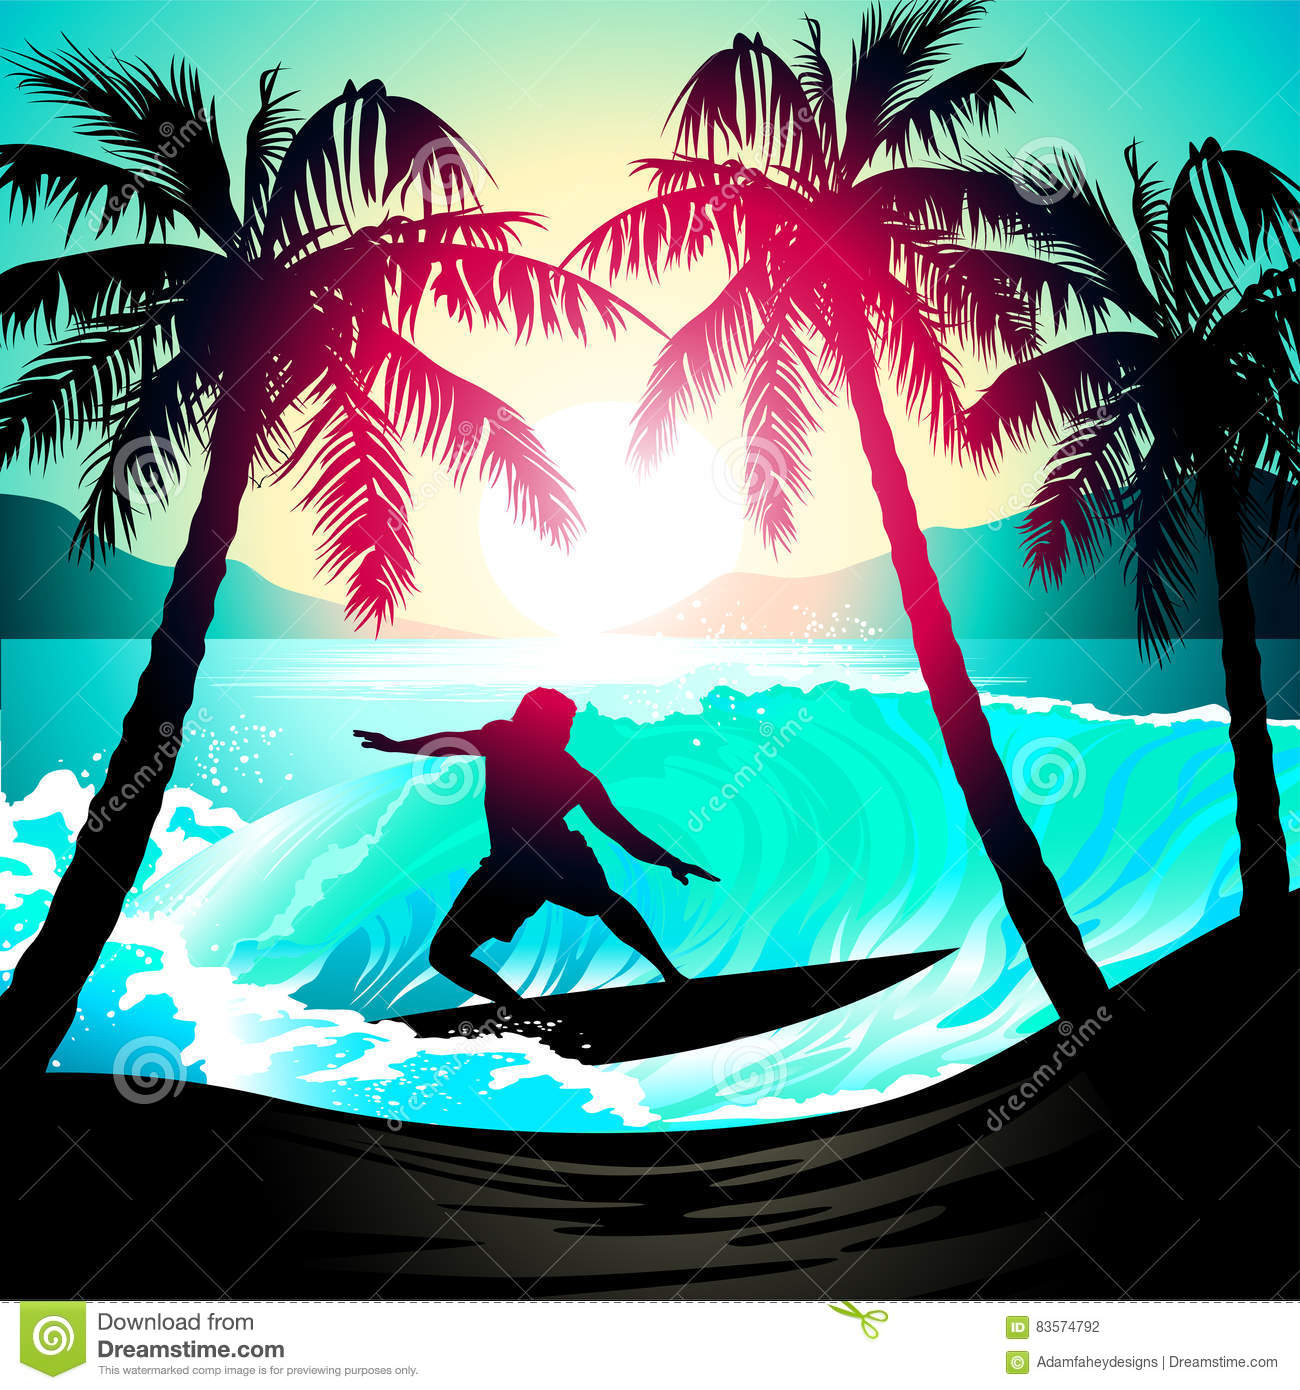 Tropical Beach At Sunset Surfing Illustration Royalty-Free